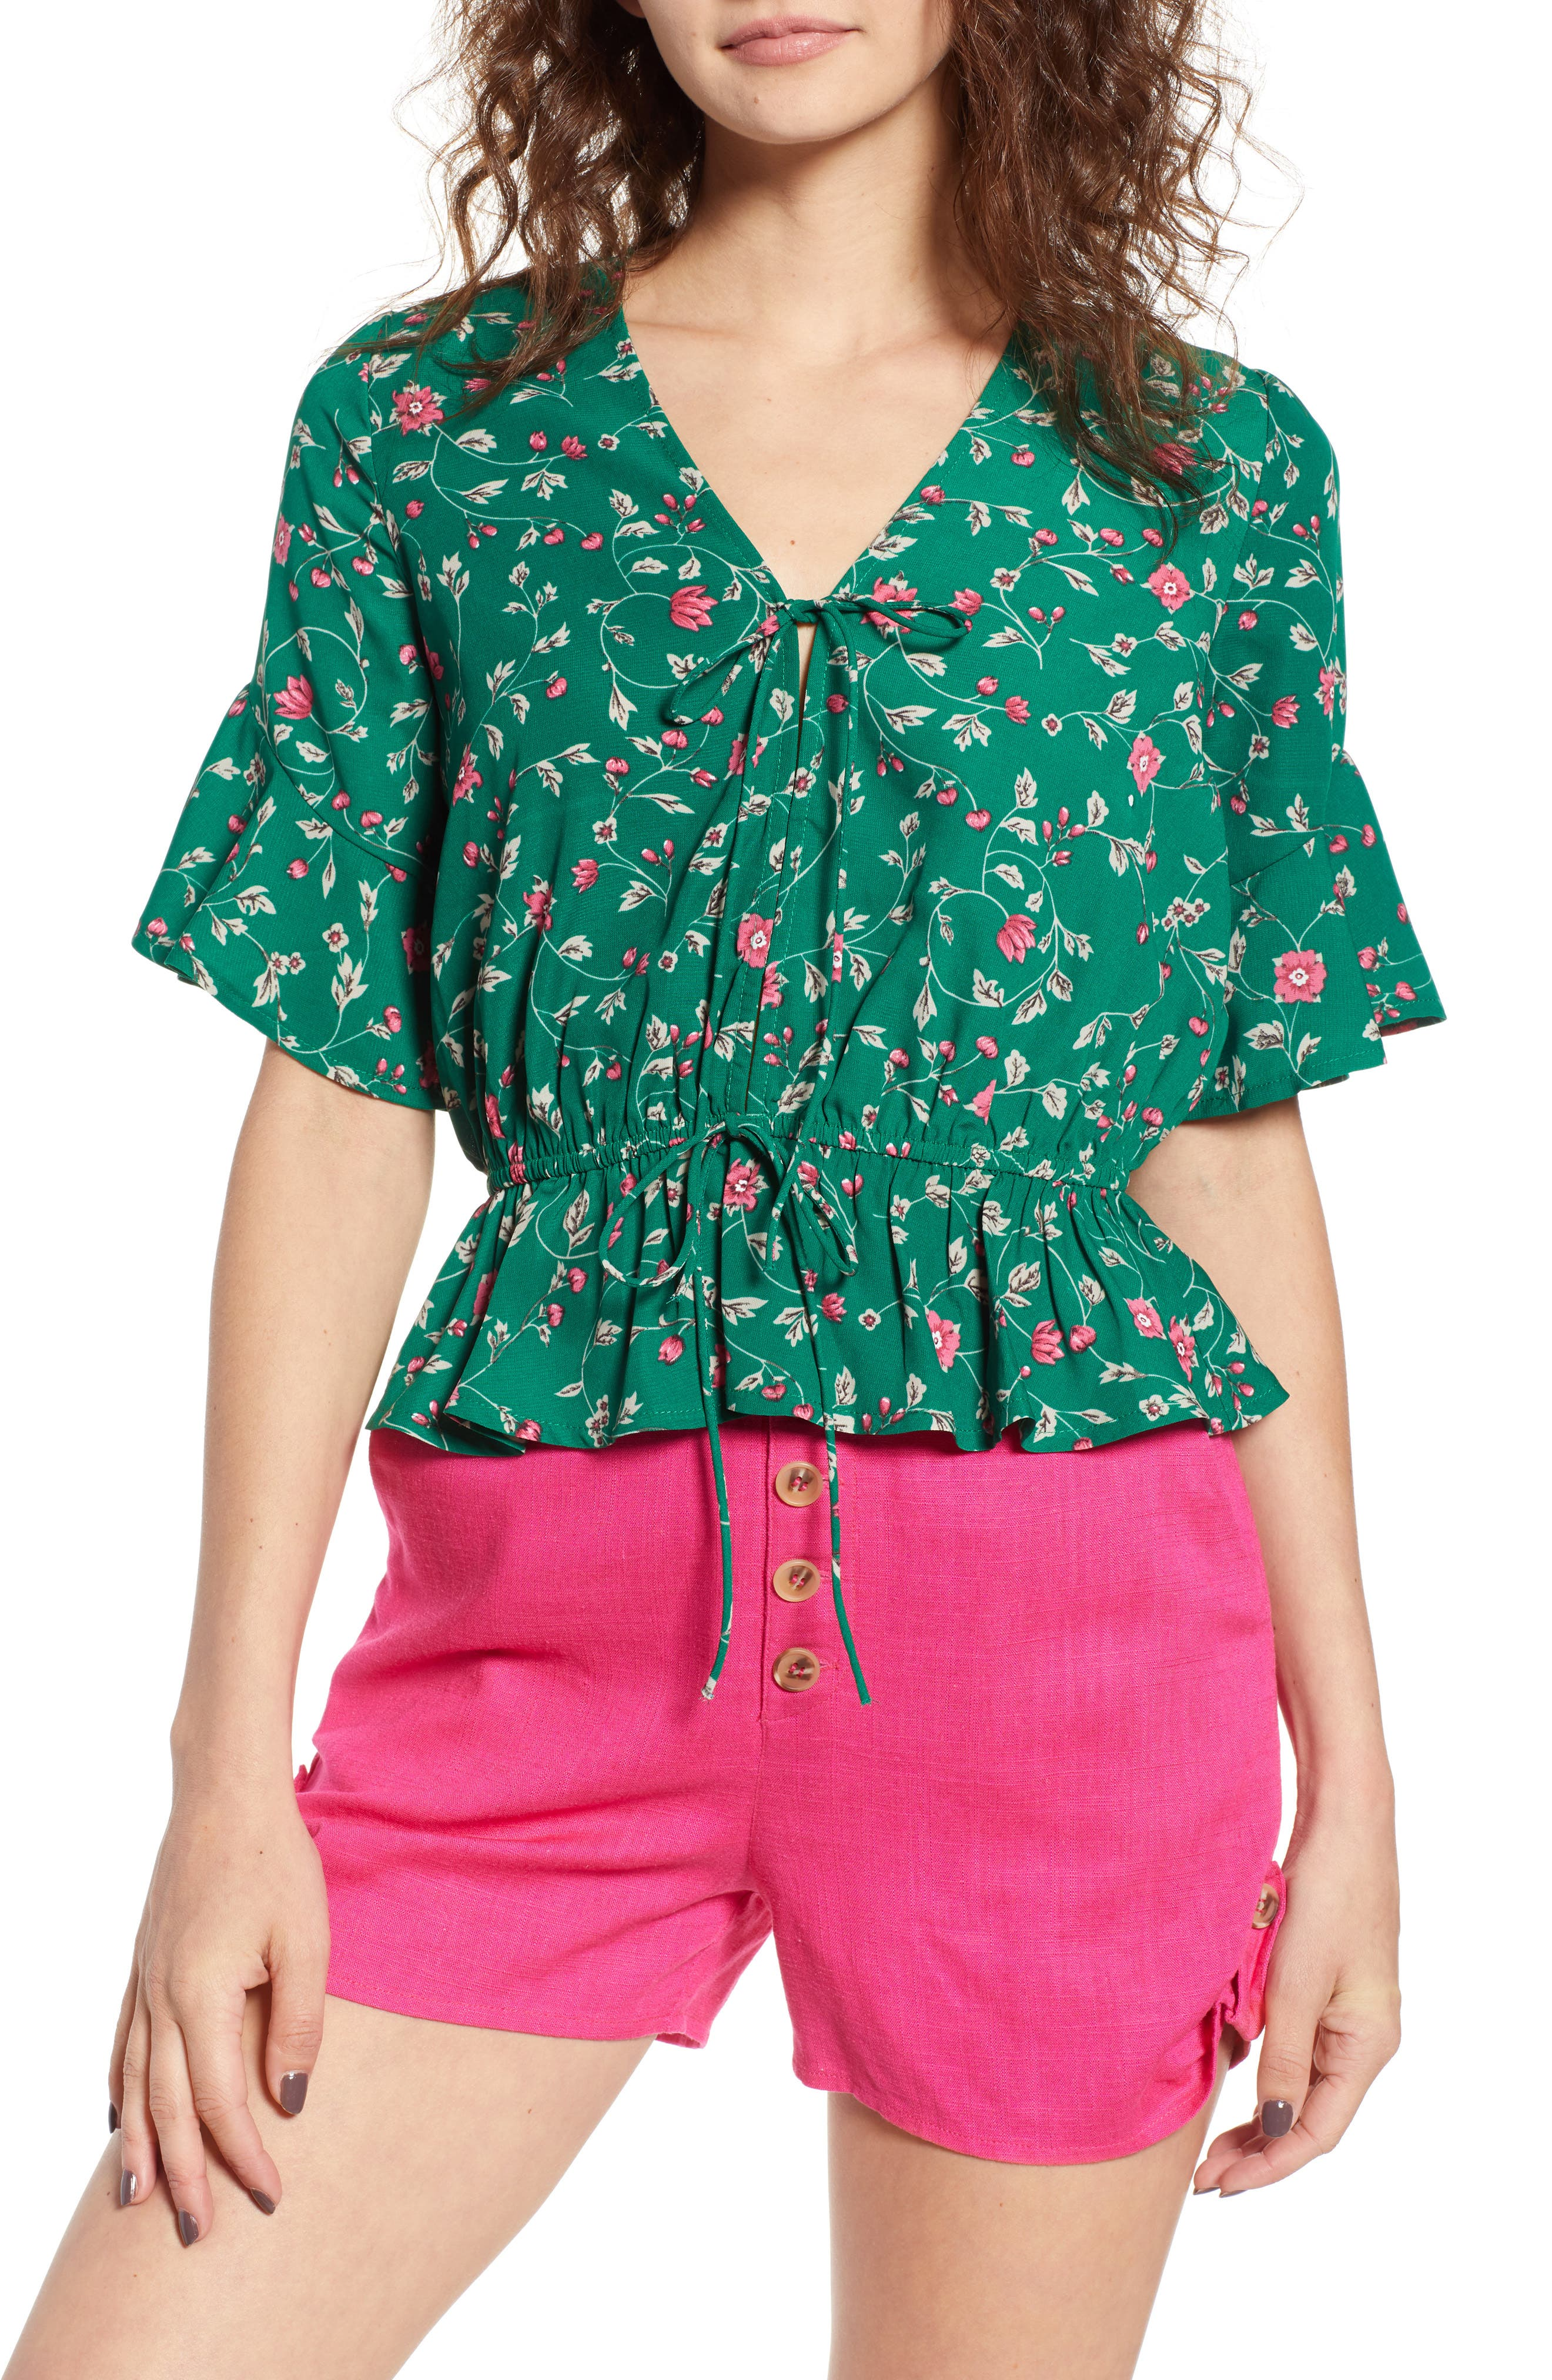 Floral Tie Front Peplum Top,                             Main thumbnail 1, color,                             Green/ Pink Floral